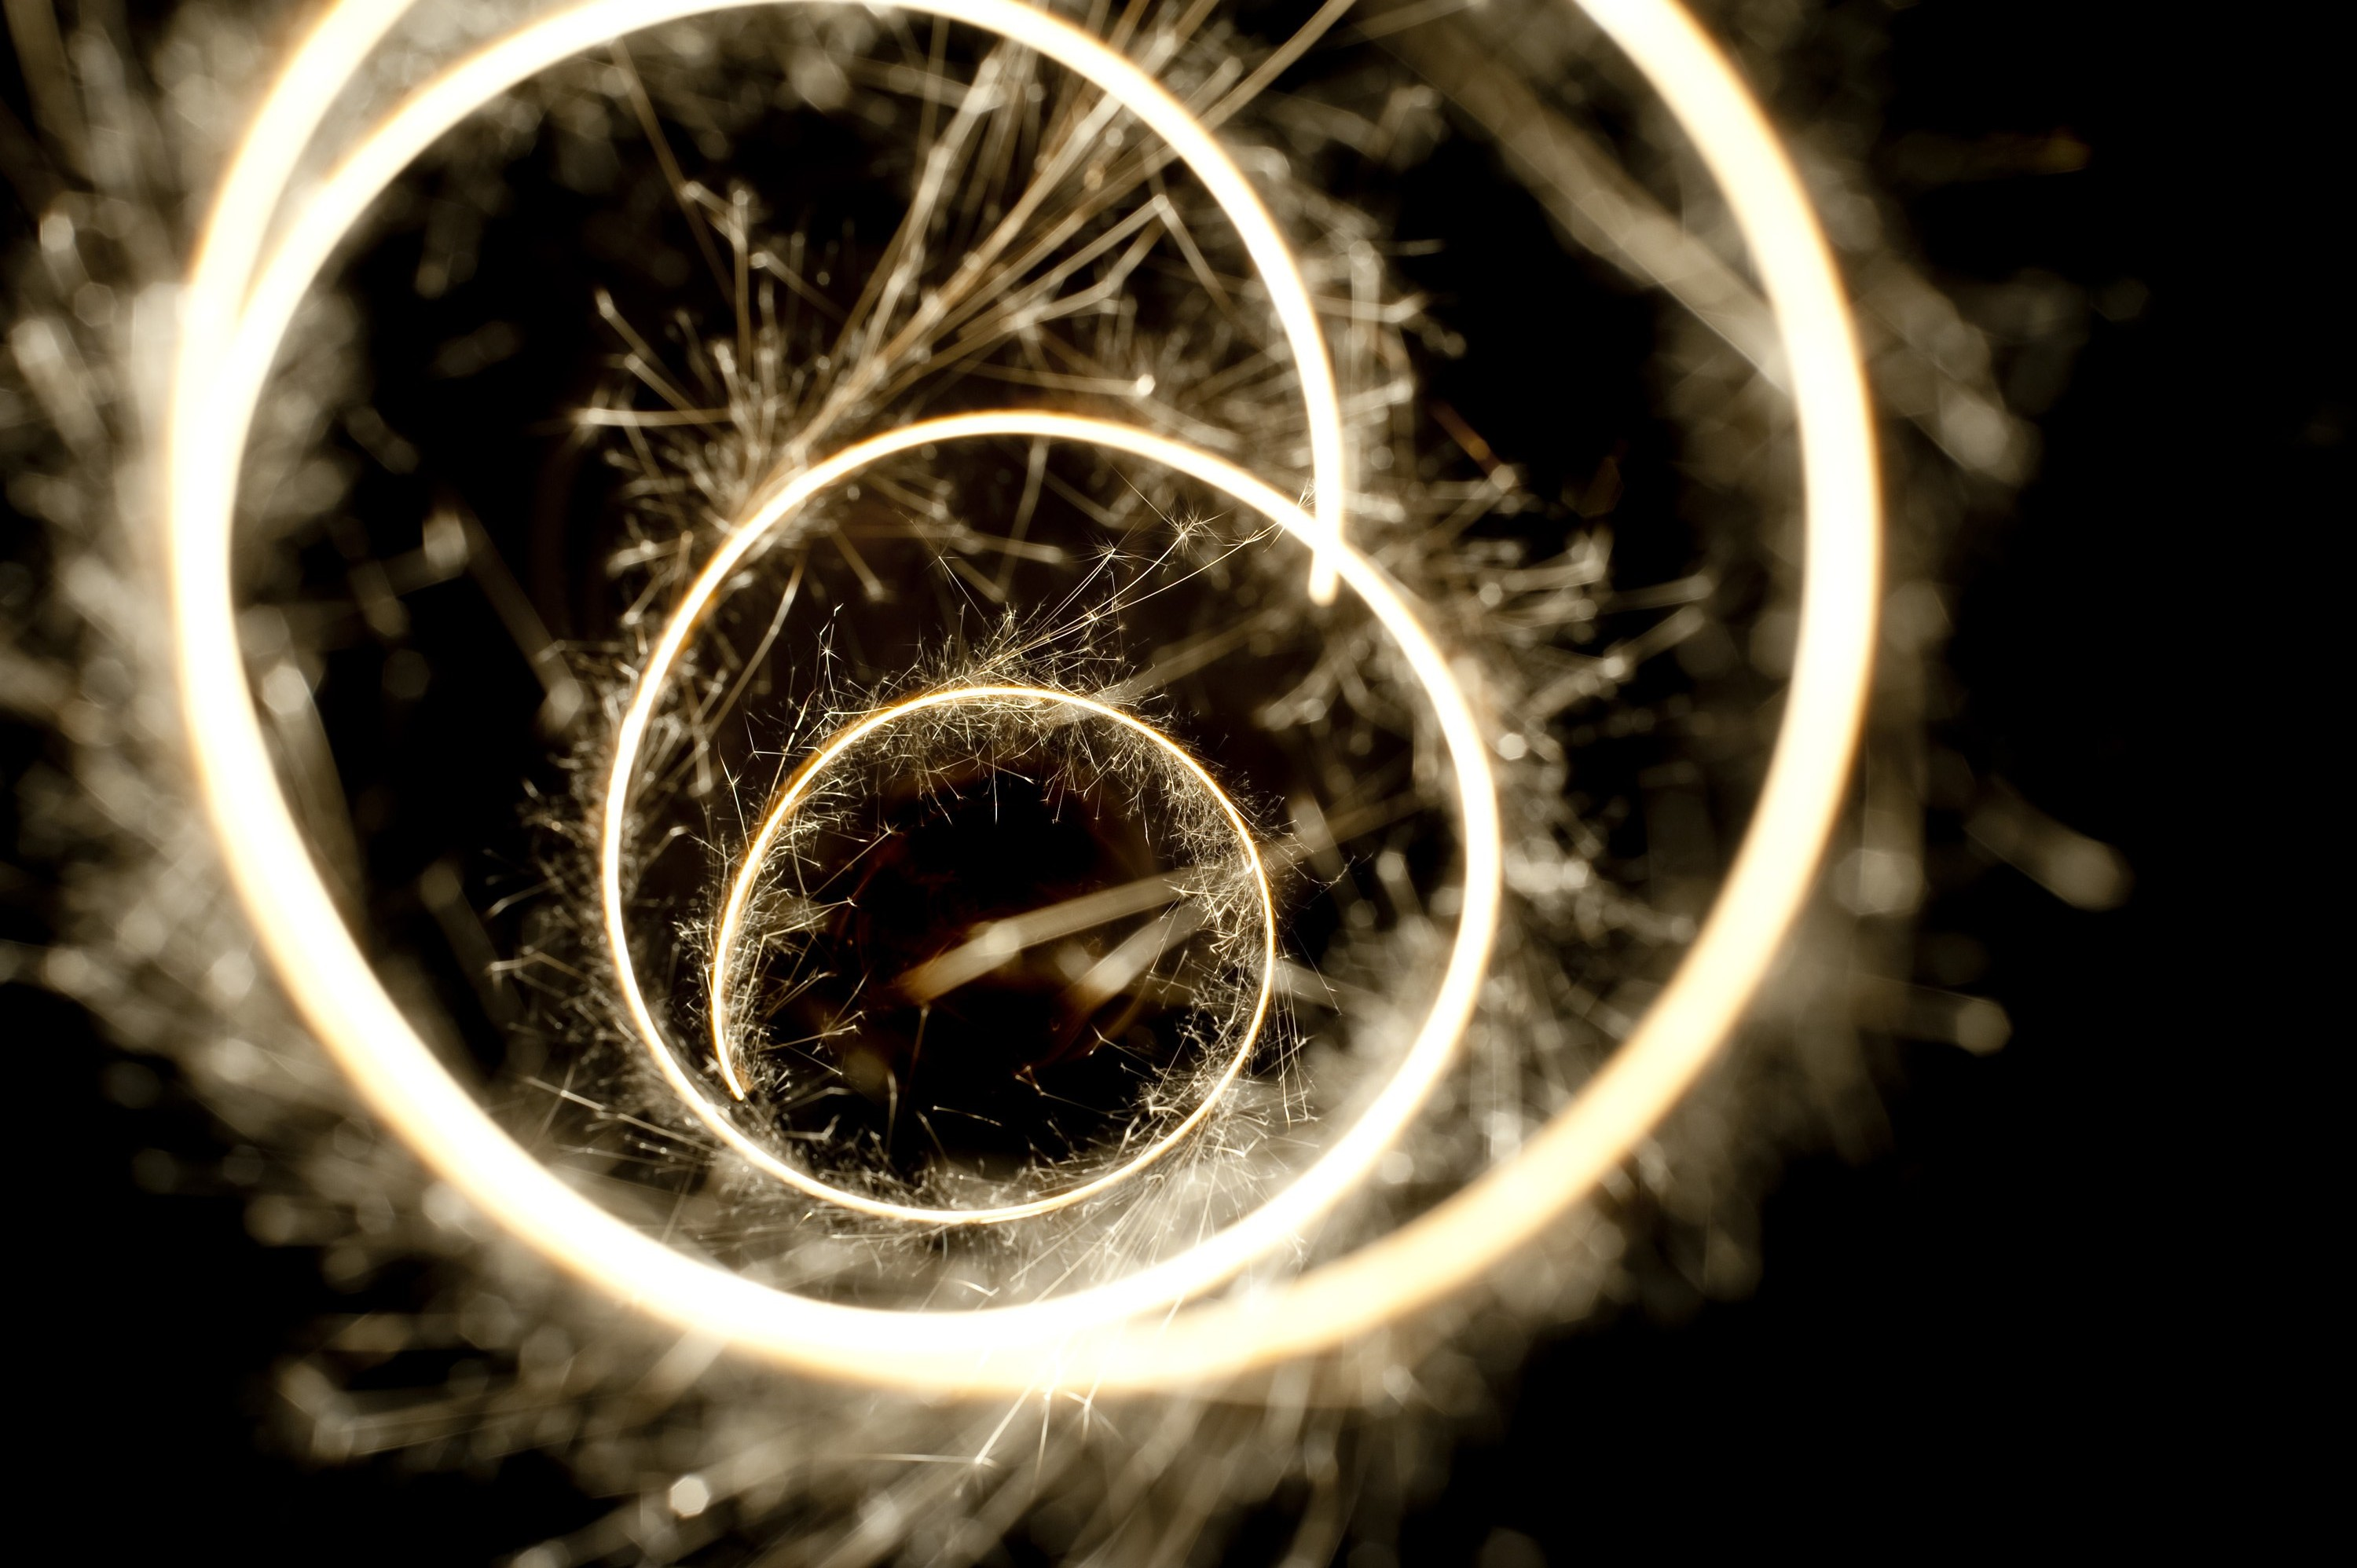 a spiral plotted with a sparkler